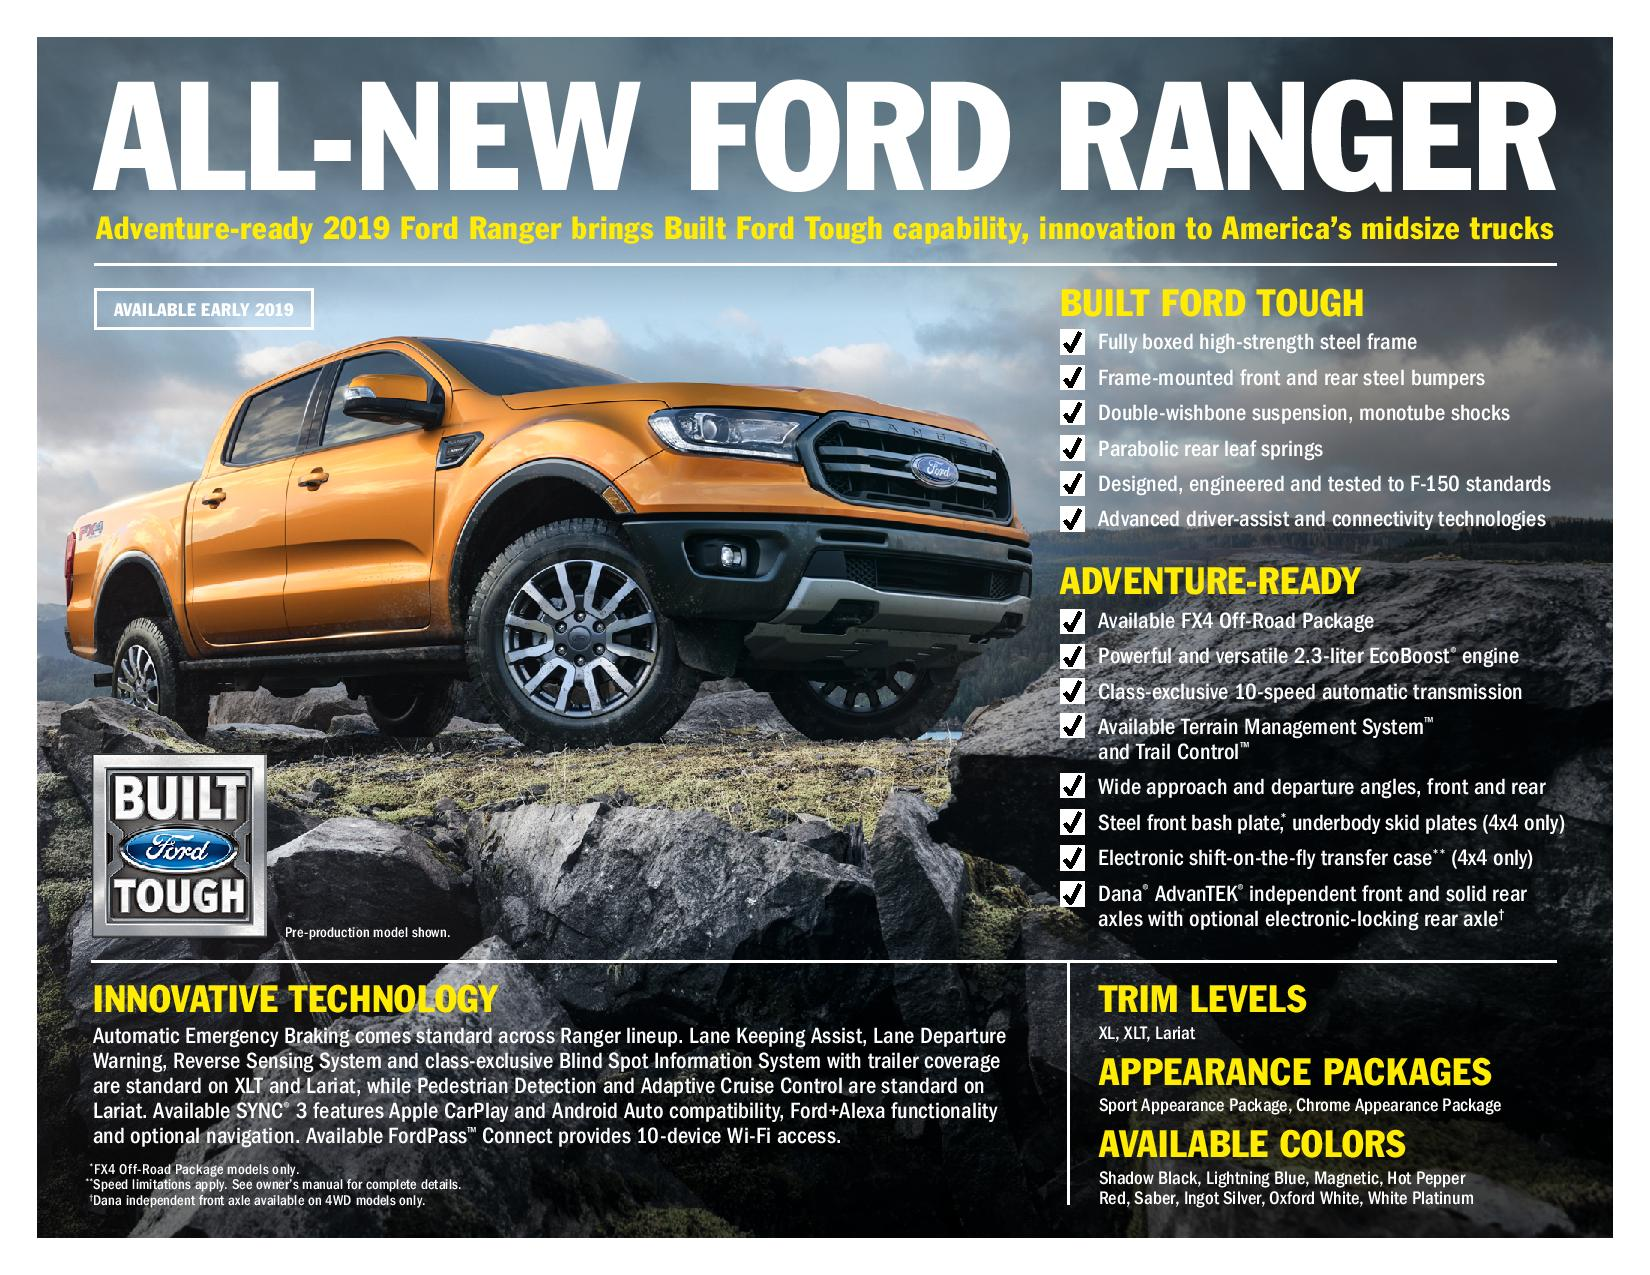 Ford reveals updated Ranger for USA  market